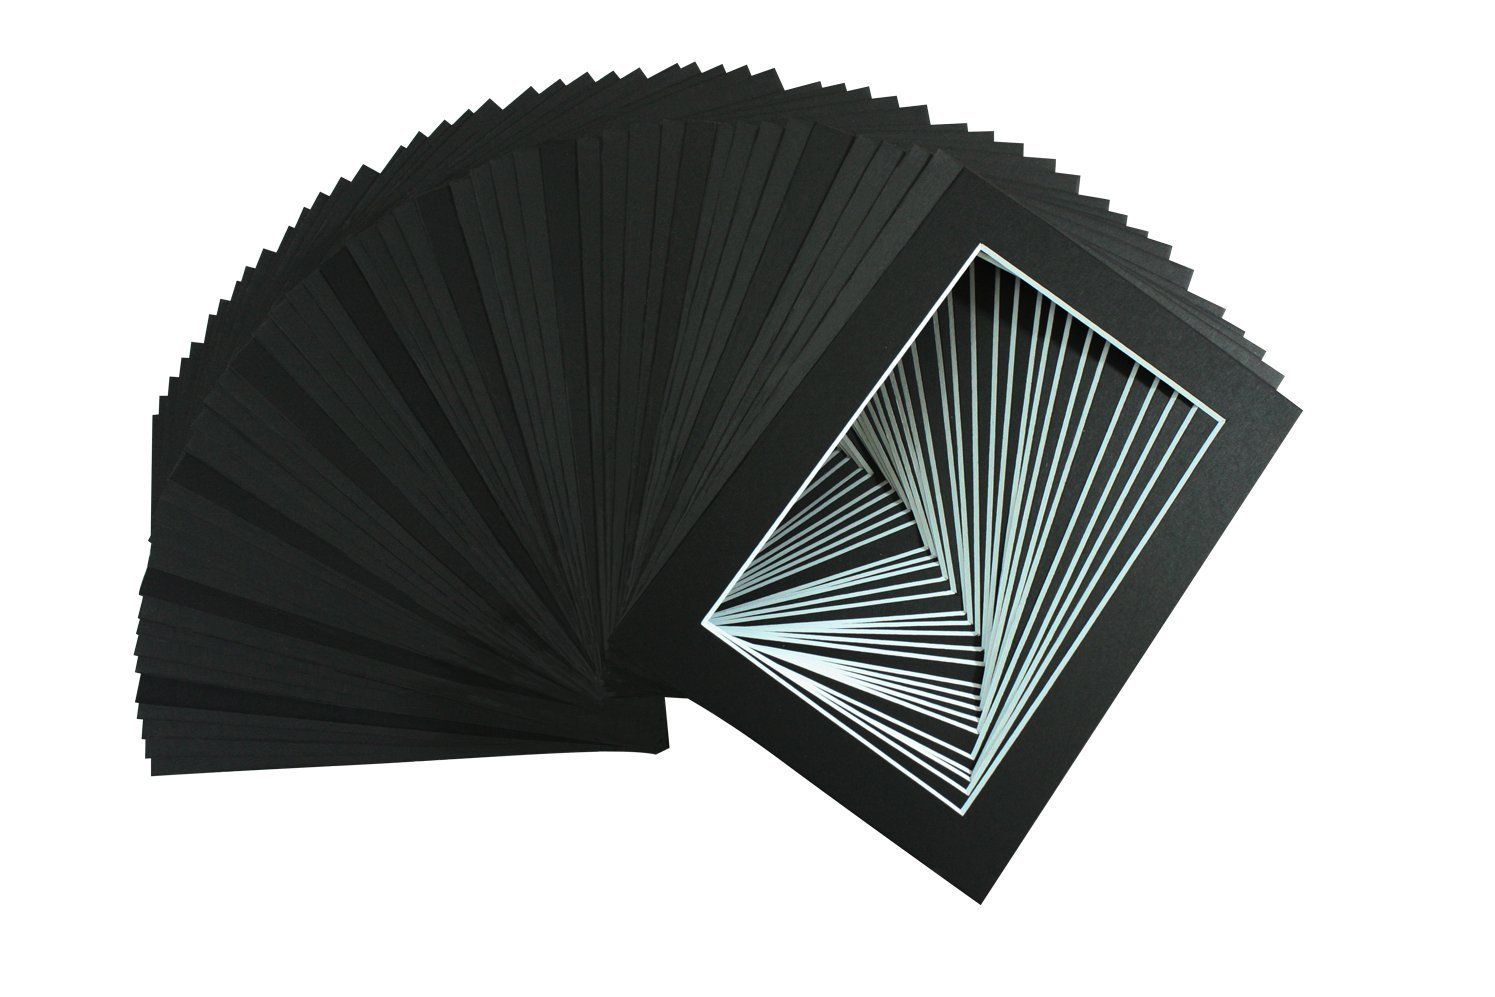 Pack of 100 5x7 BLACK Picture Mats Mattes with White Core Bevel Cut for 4x6 Photo + Back + Bags by Golden State Art